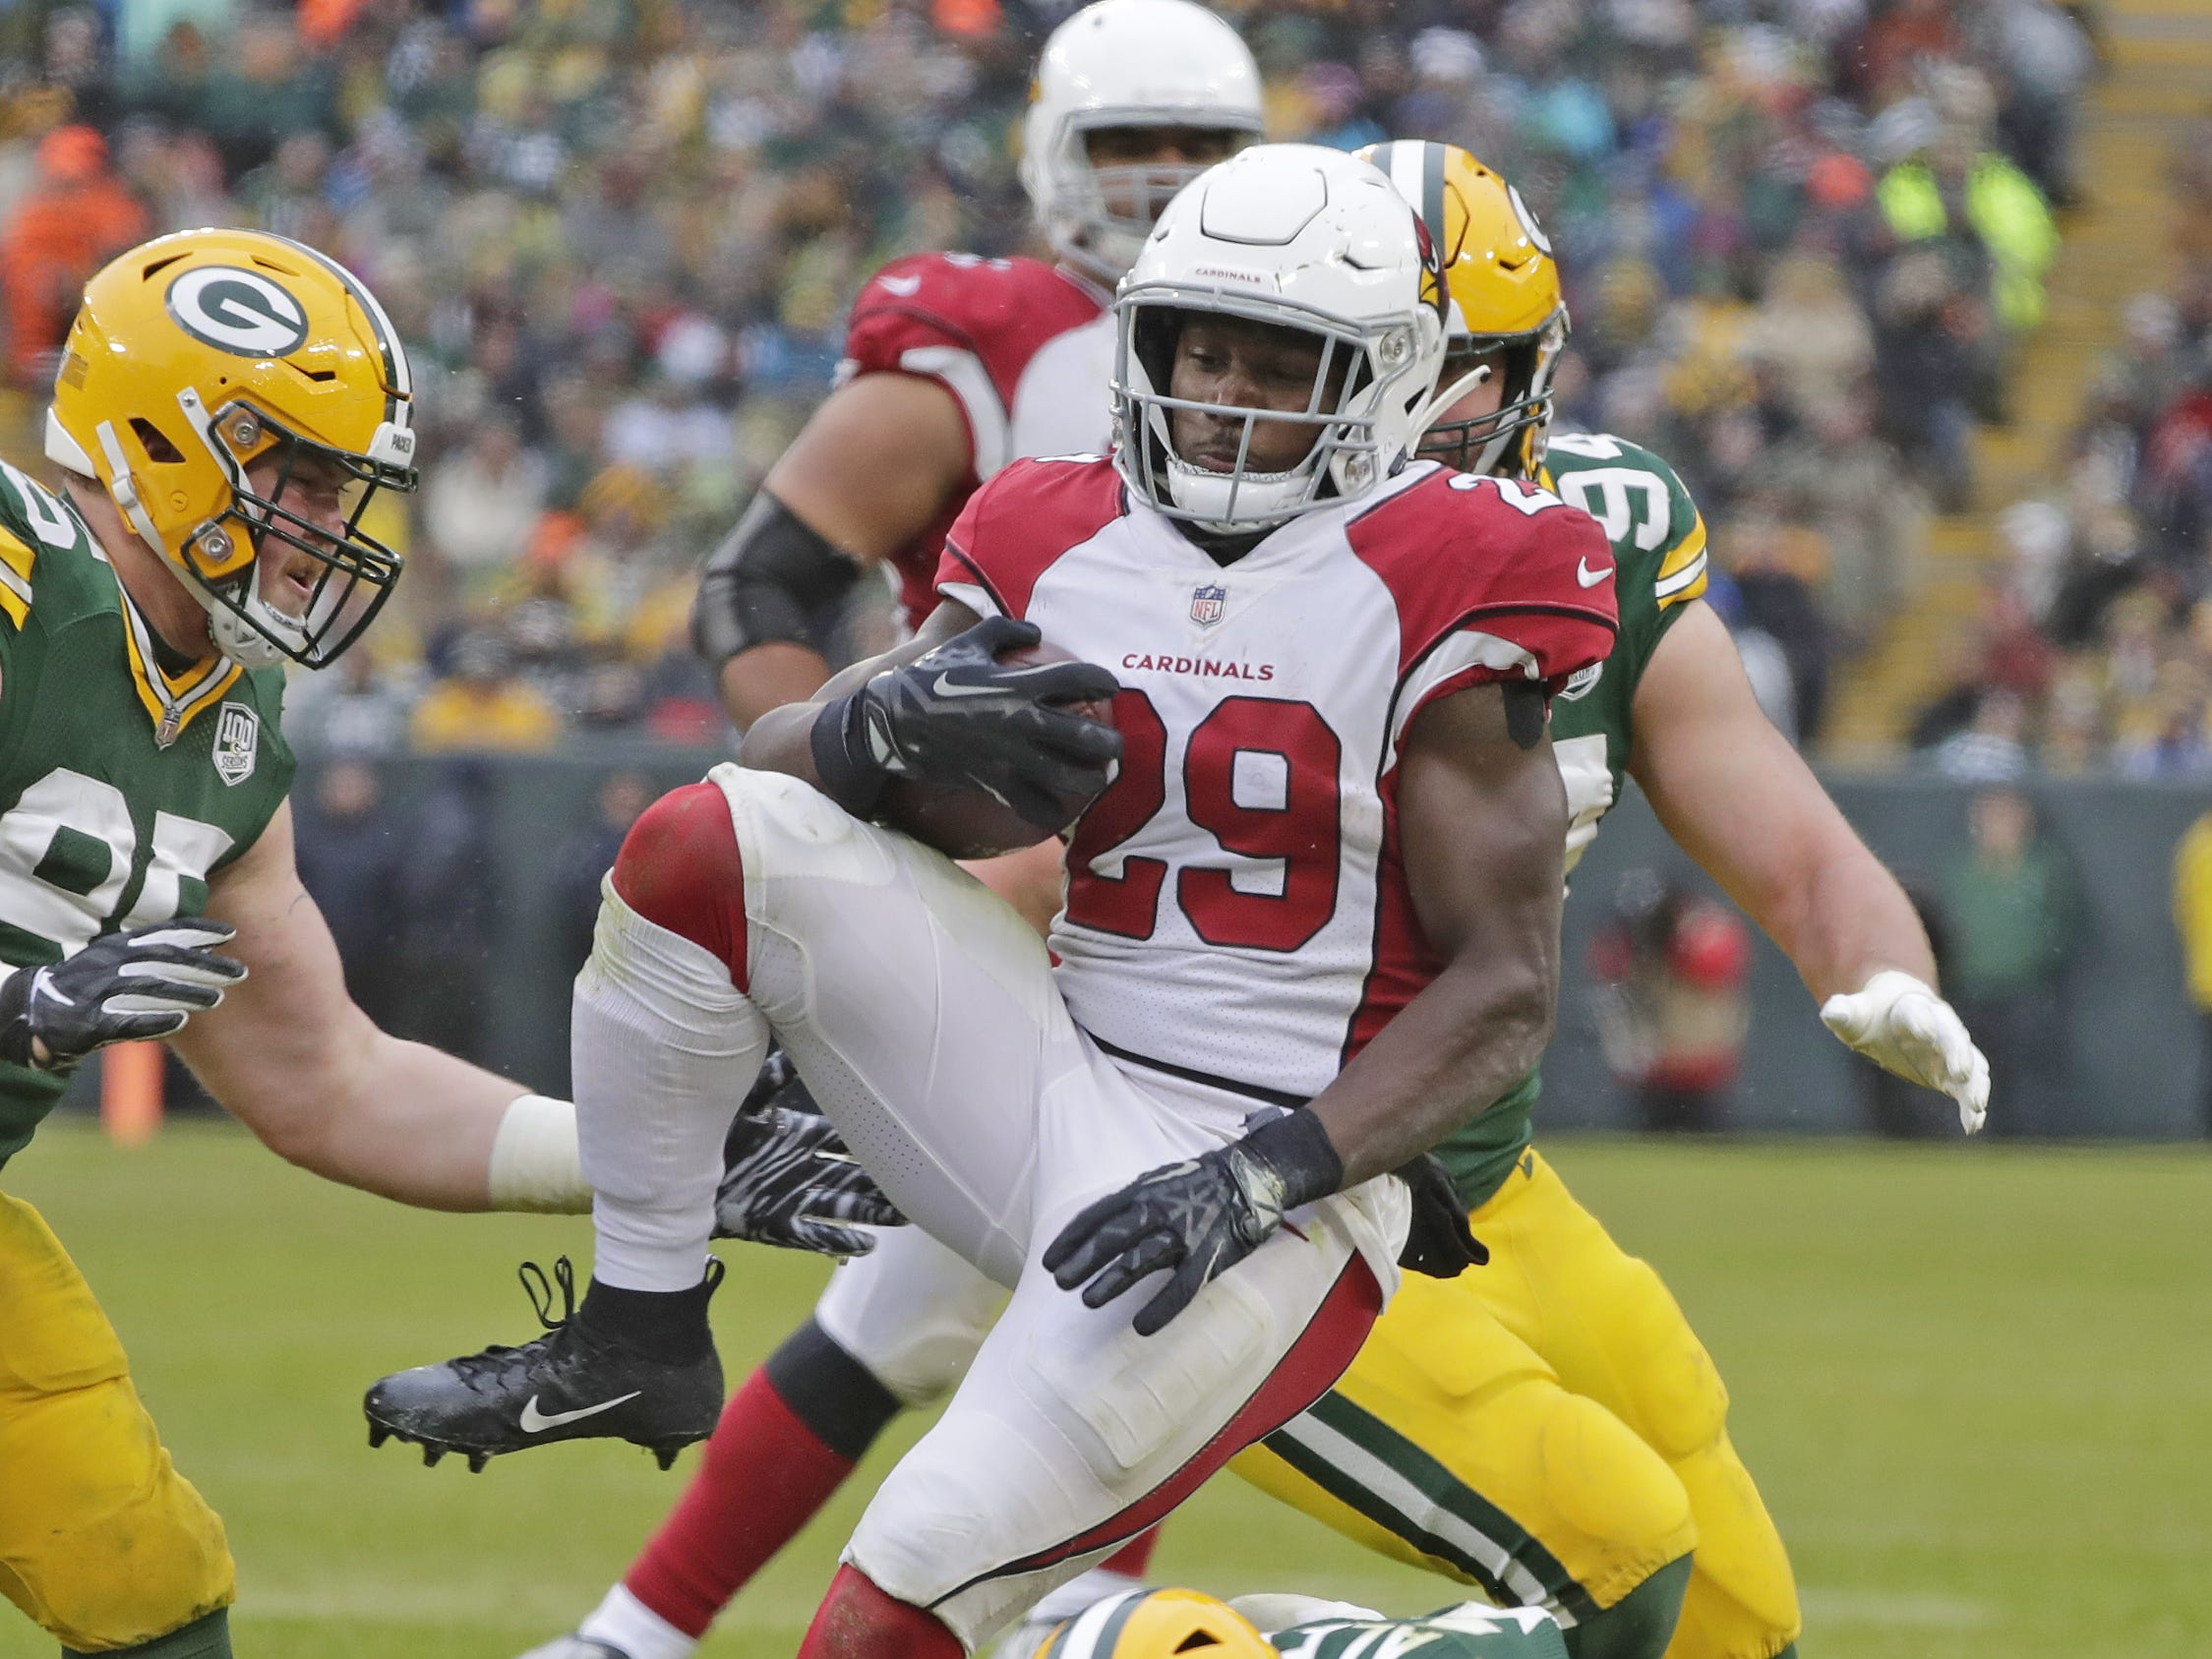 Green Bay Packers cornerback Jaire Alexander (23) tackles Arizona Cardinals running back Chase Edmonds (29) in the fourth quarter at Lambeau Field on Sunday, December 2, 2018 in Green Bay, Wis.